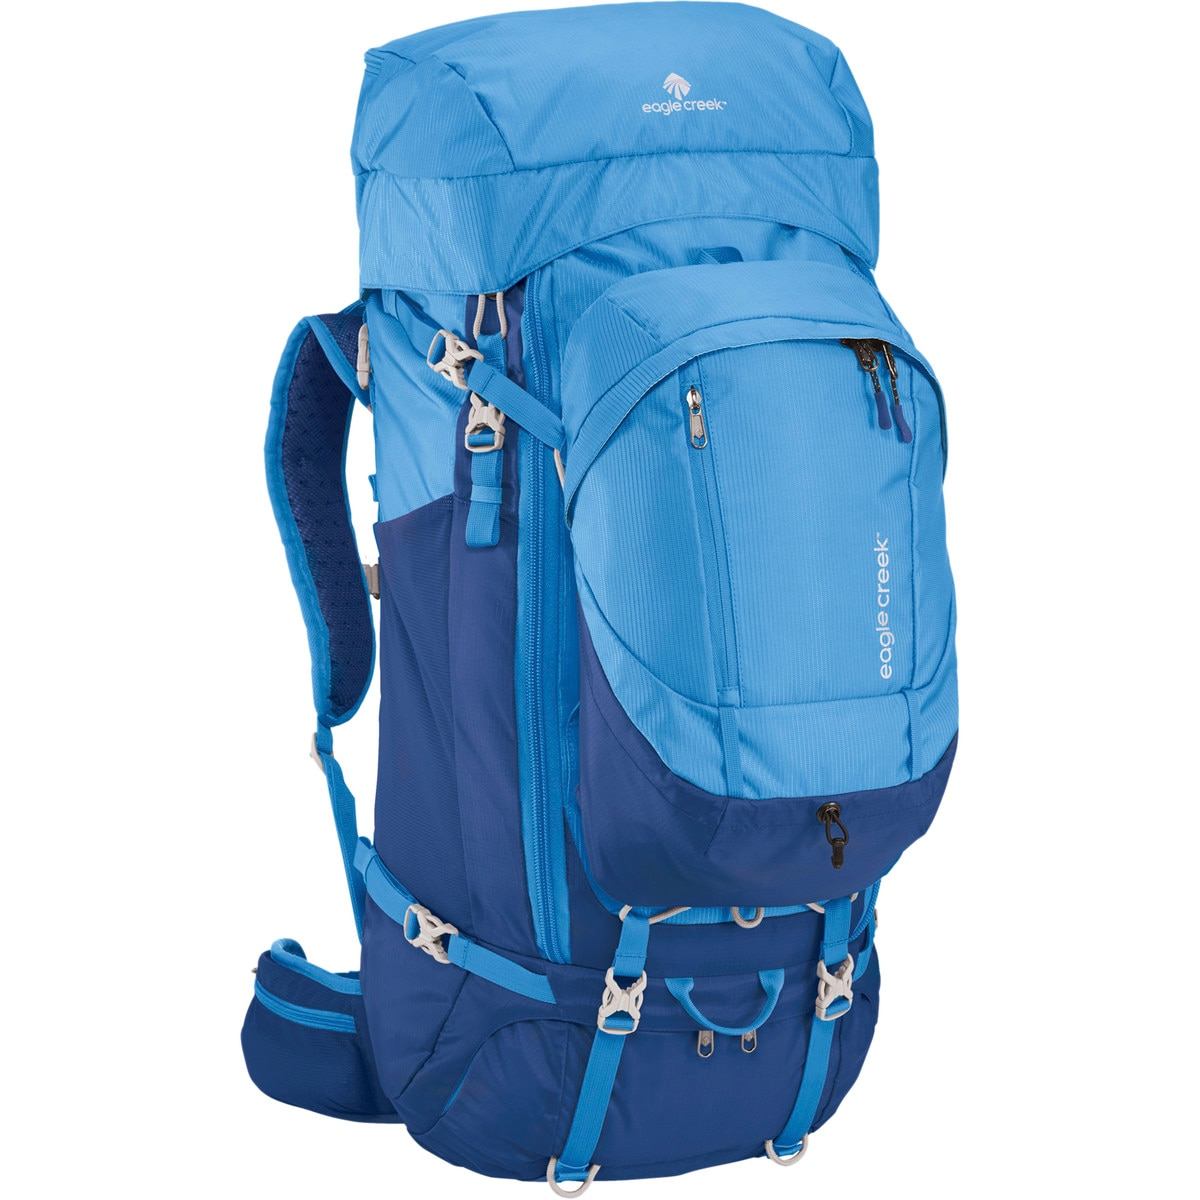 photo: Eagle Creek Women's Deviate 85L Travel Backpack